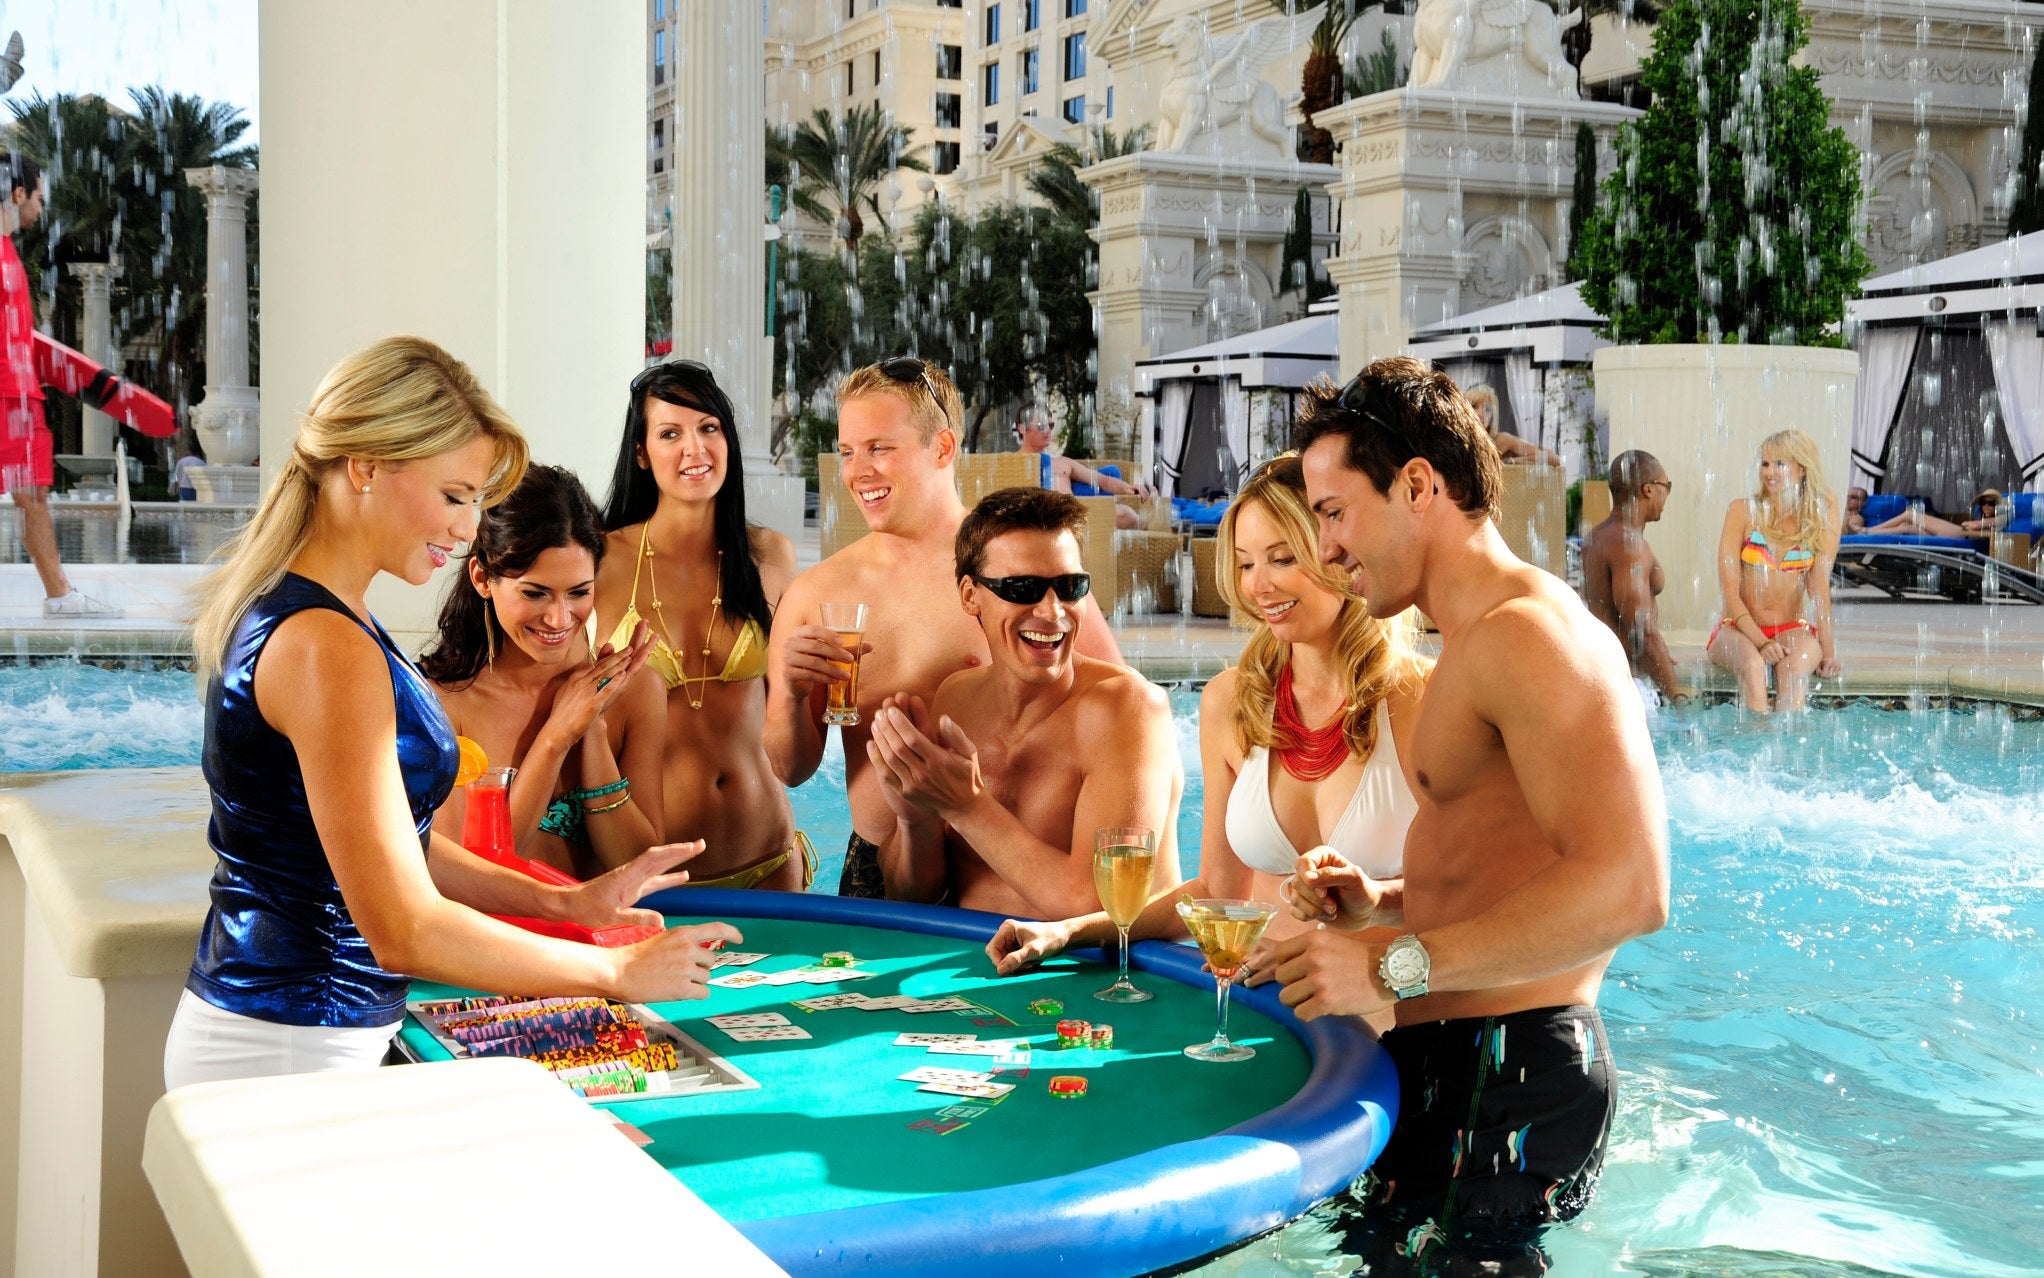 10 Best Hotel Swimming Pools Around The World - Caesars Palace, Las Vegas - LuxDeco.com Style Guide